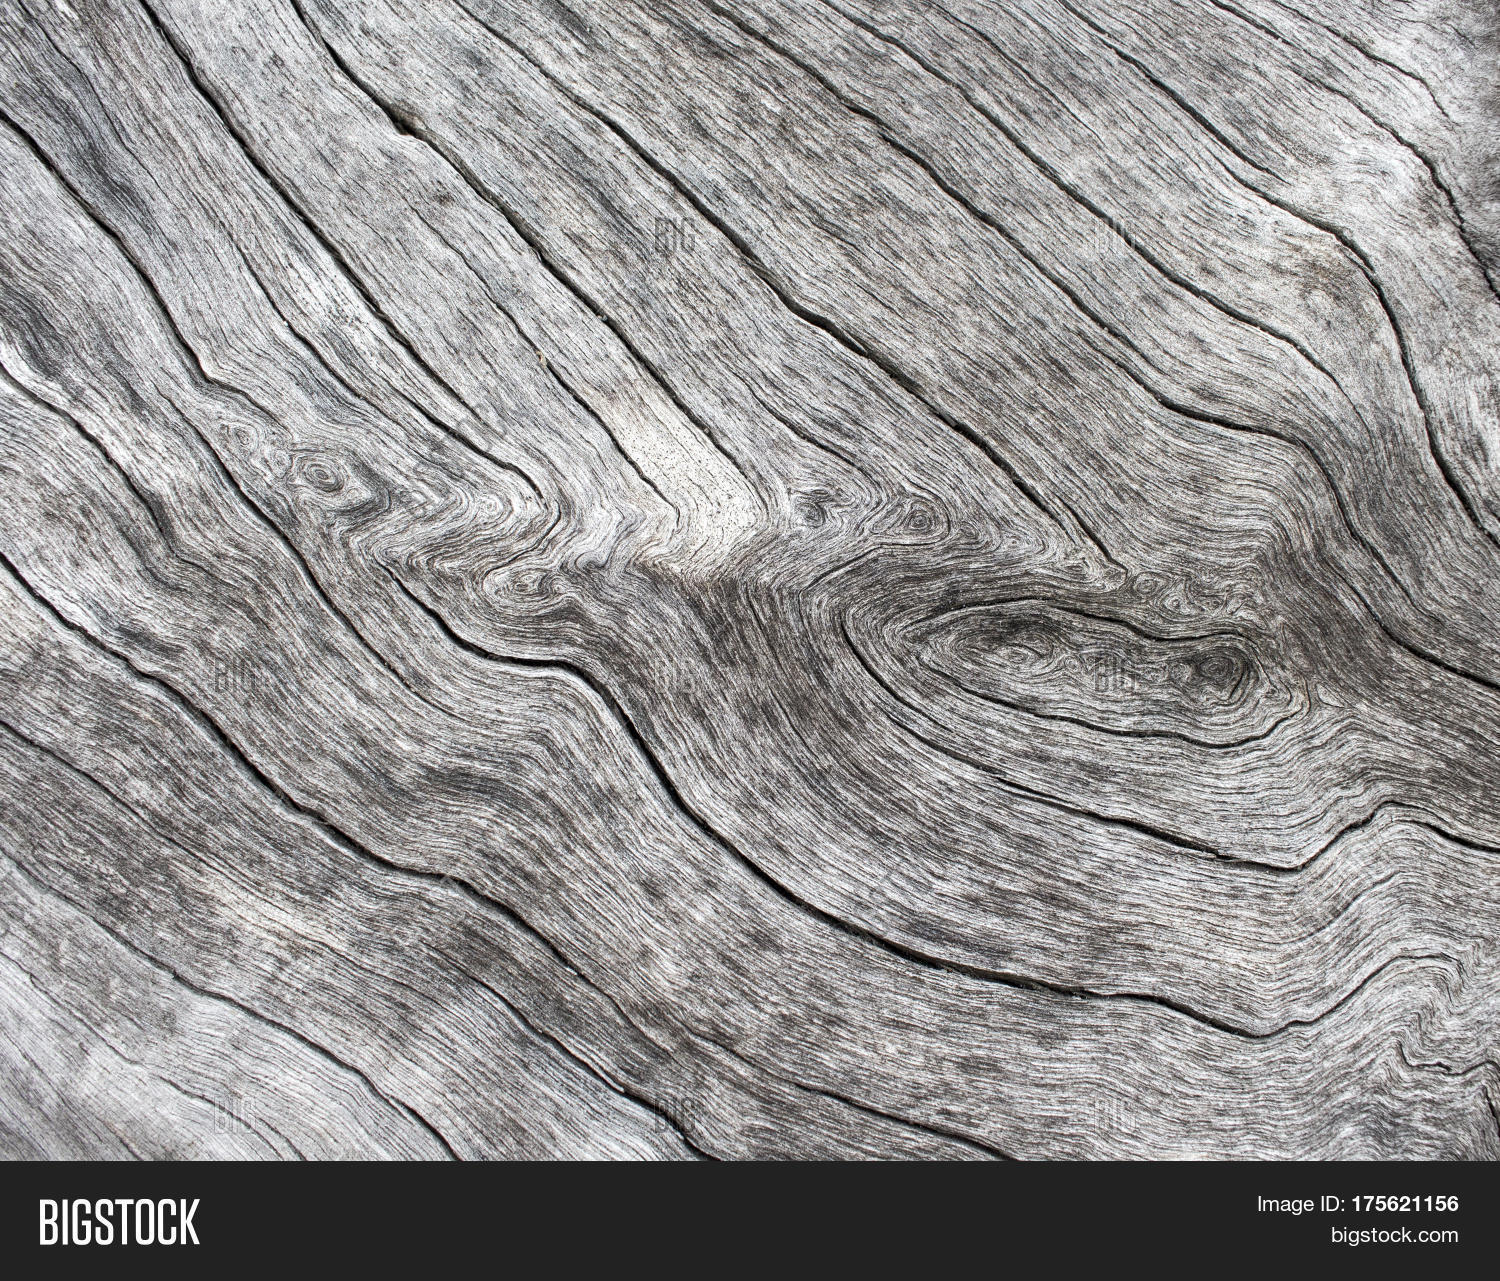 Silver Wood Background Image & Photo (Free Trial) | Bigstock